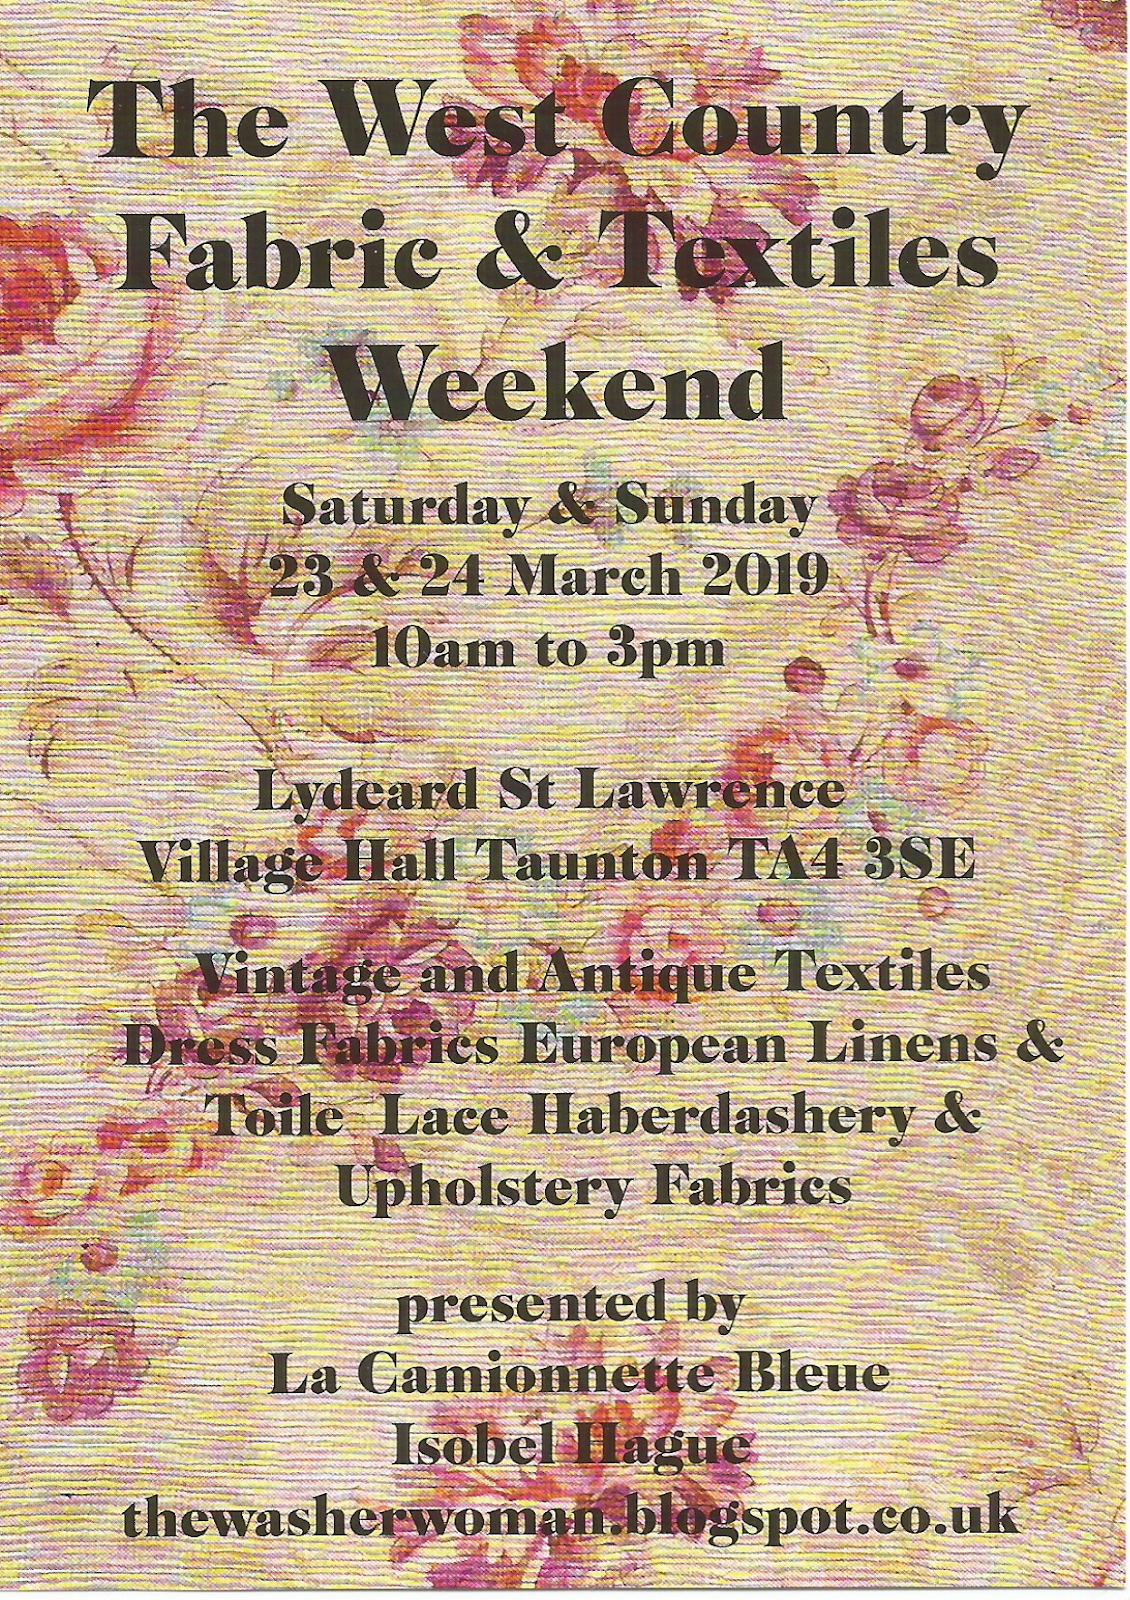 The West Country Textile Weekend